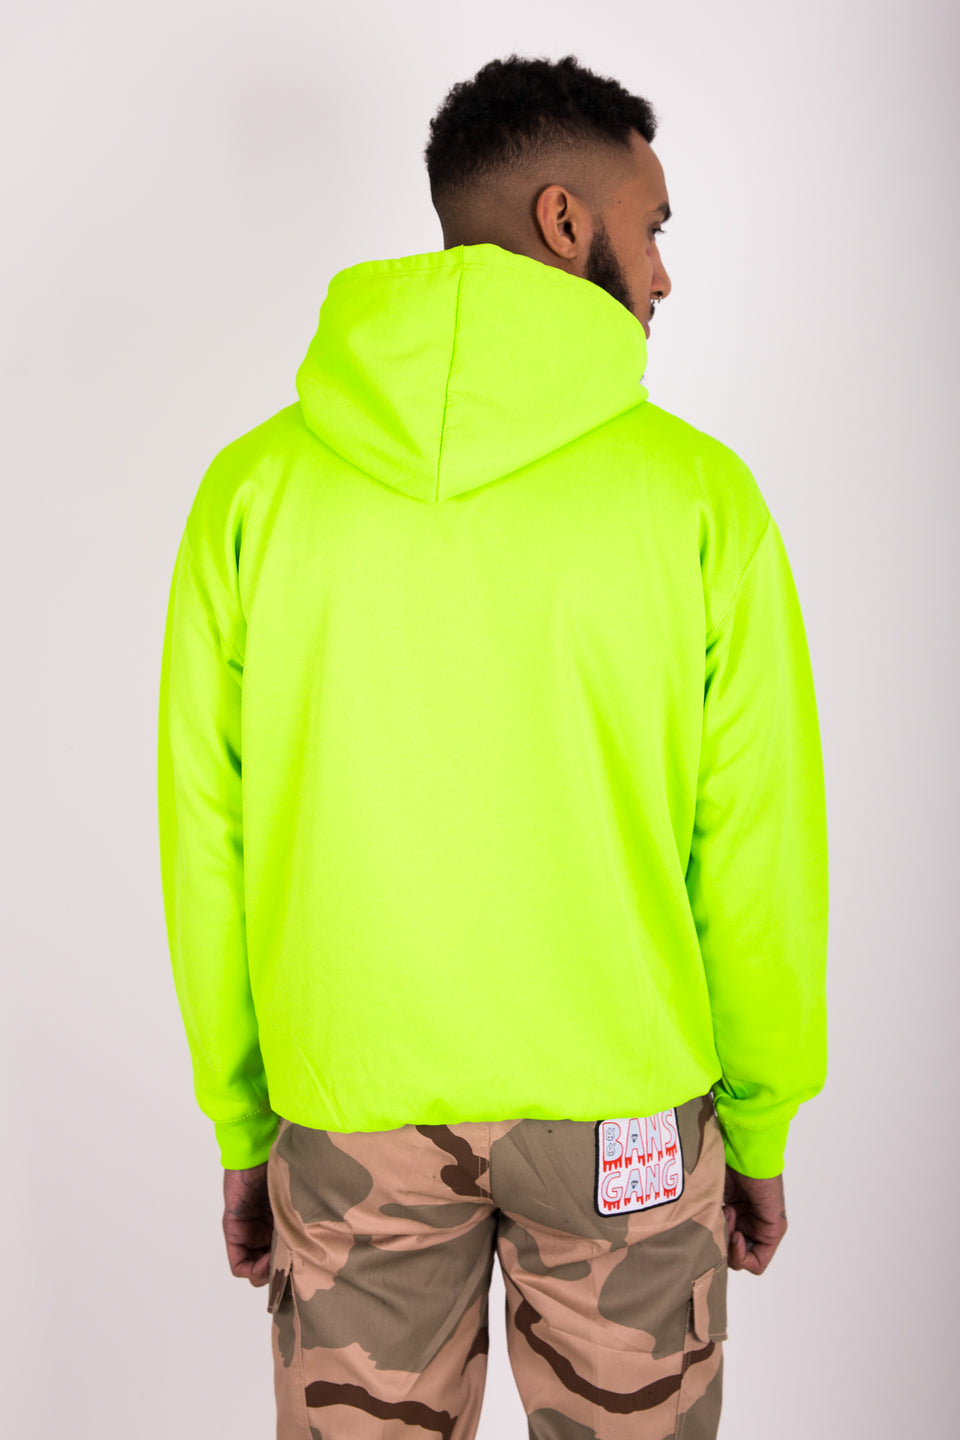 BANS GANG LOVES YOU - NEON GRAPHIC HOODIE